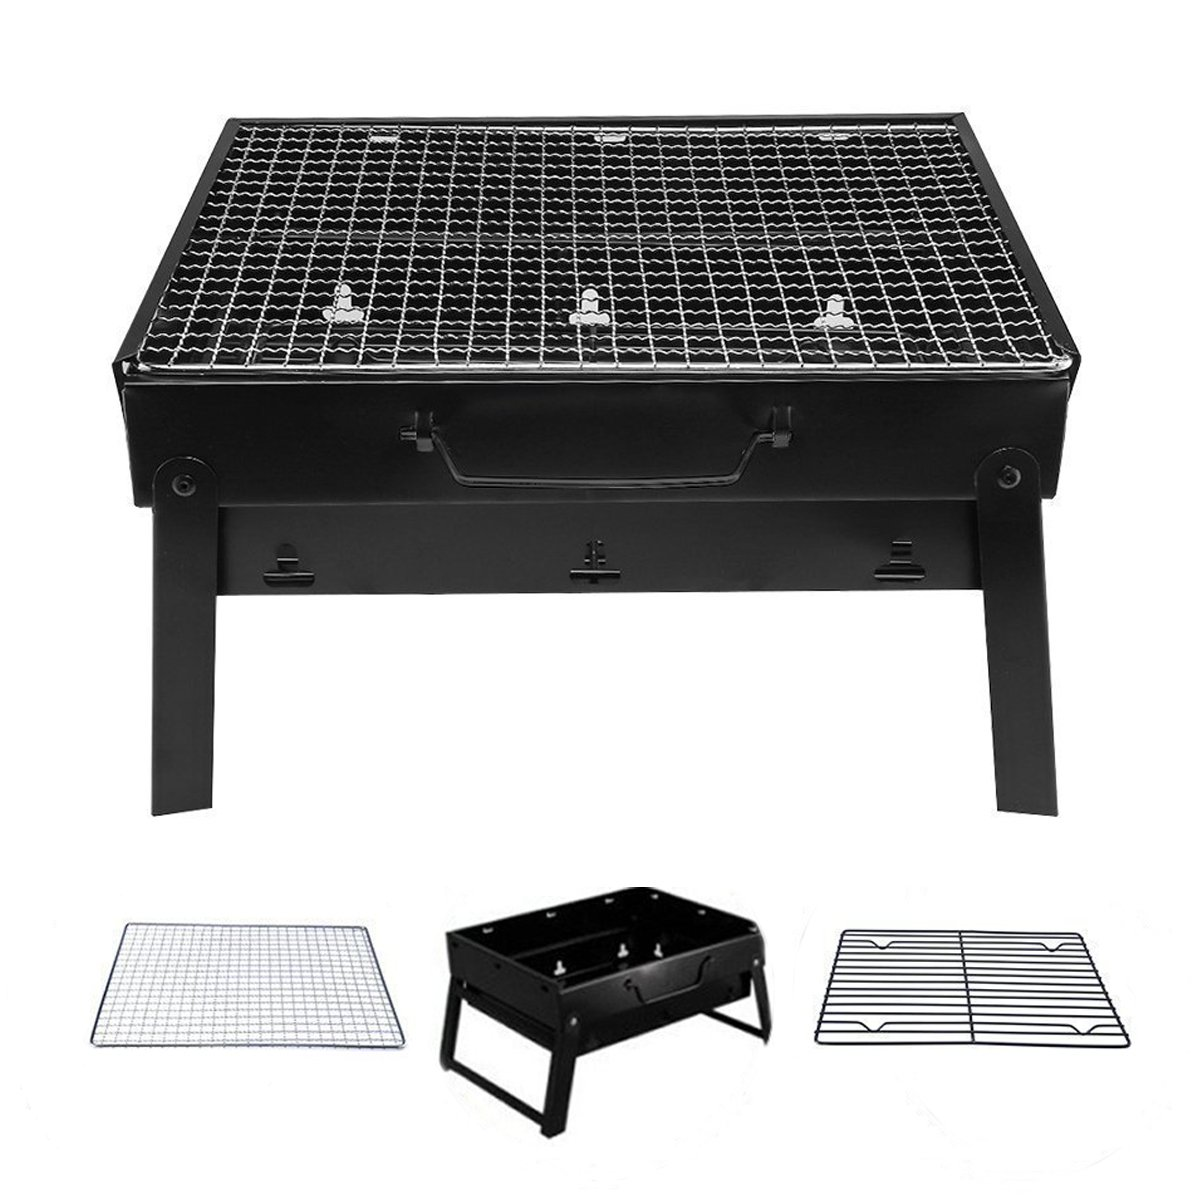 Crystals BBQ Barbecue Grill Portable Folding Charcoal for Camping Garden Outdoor Cooking Fun by